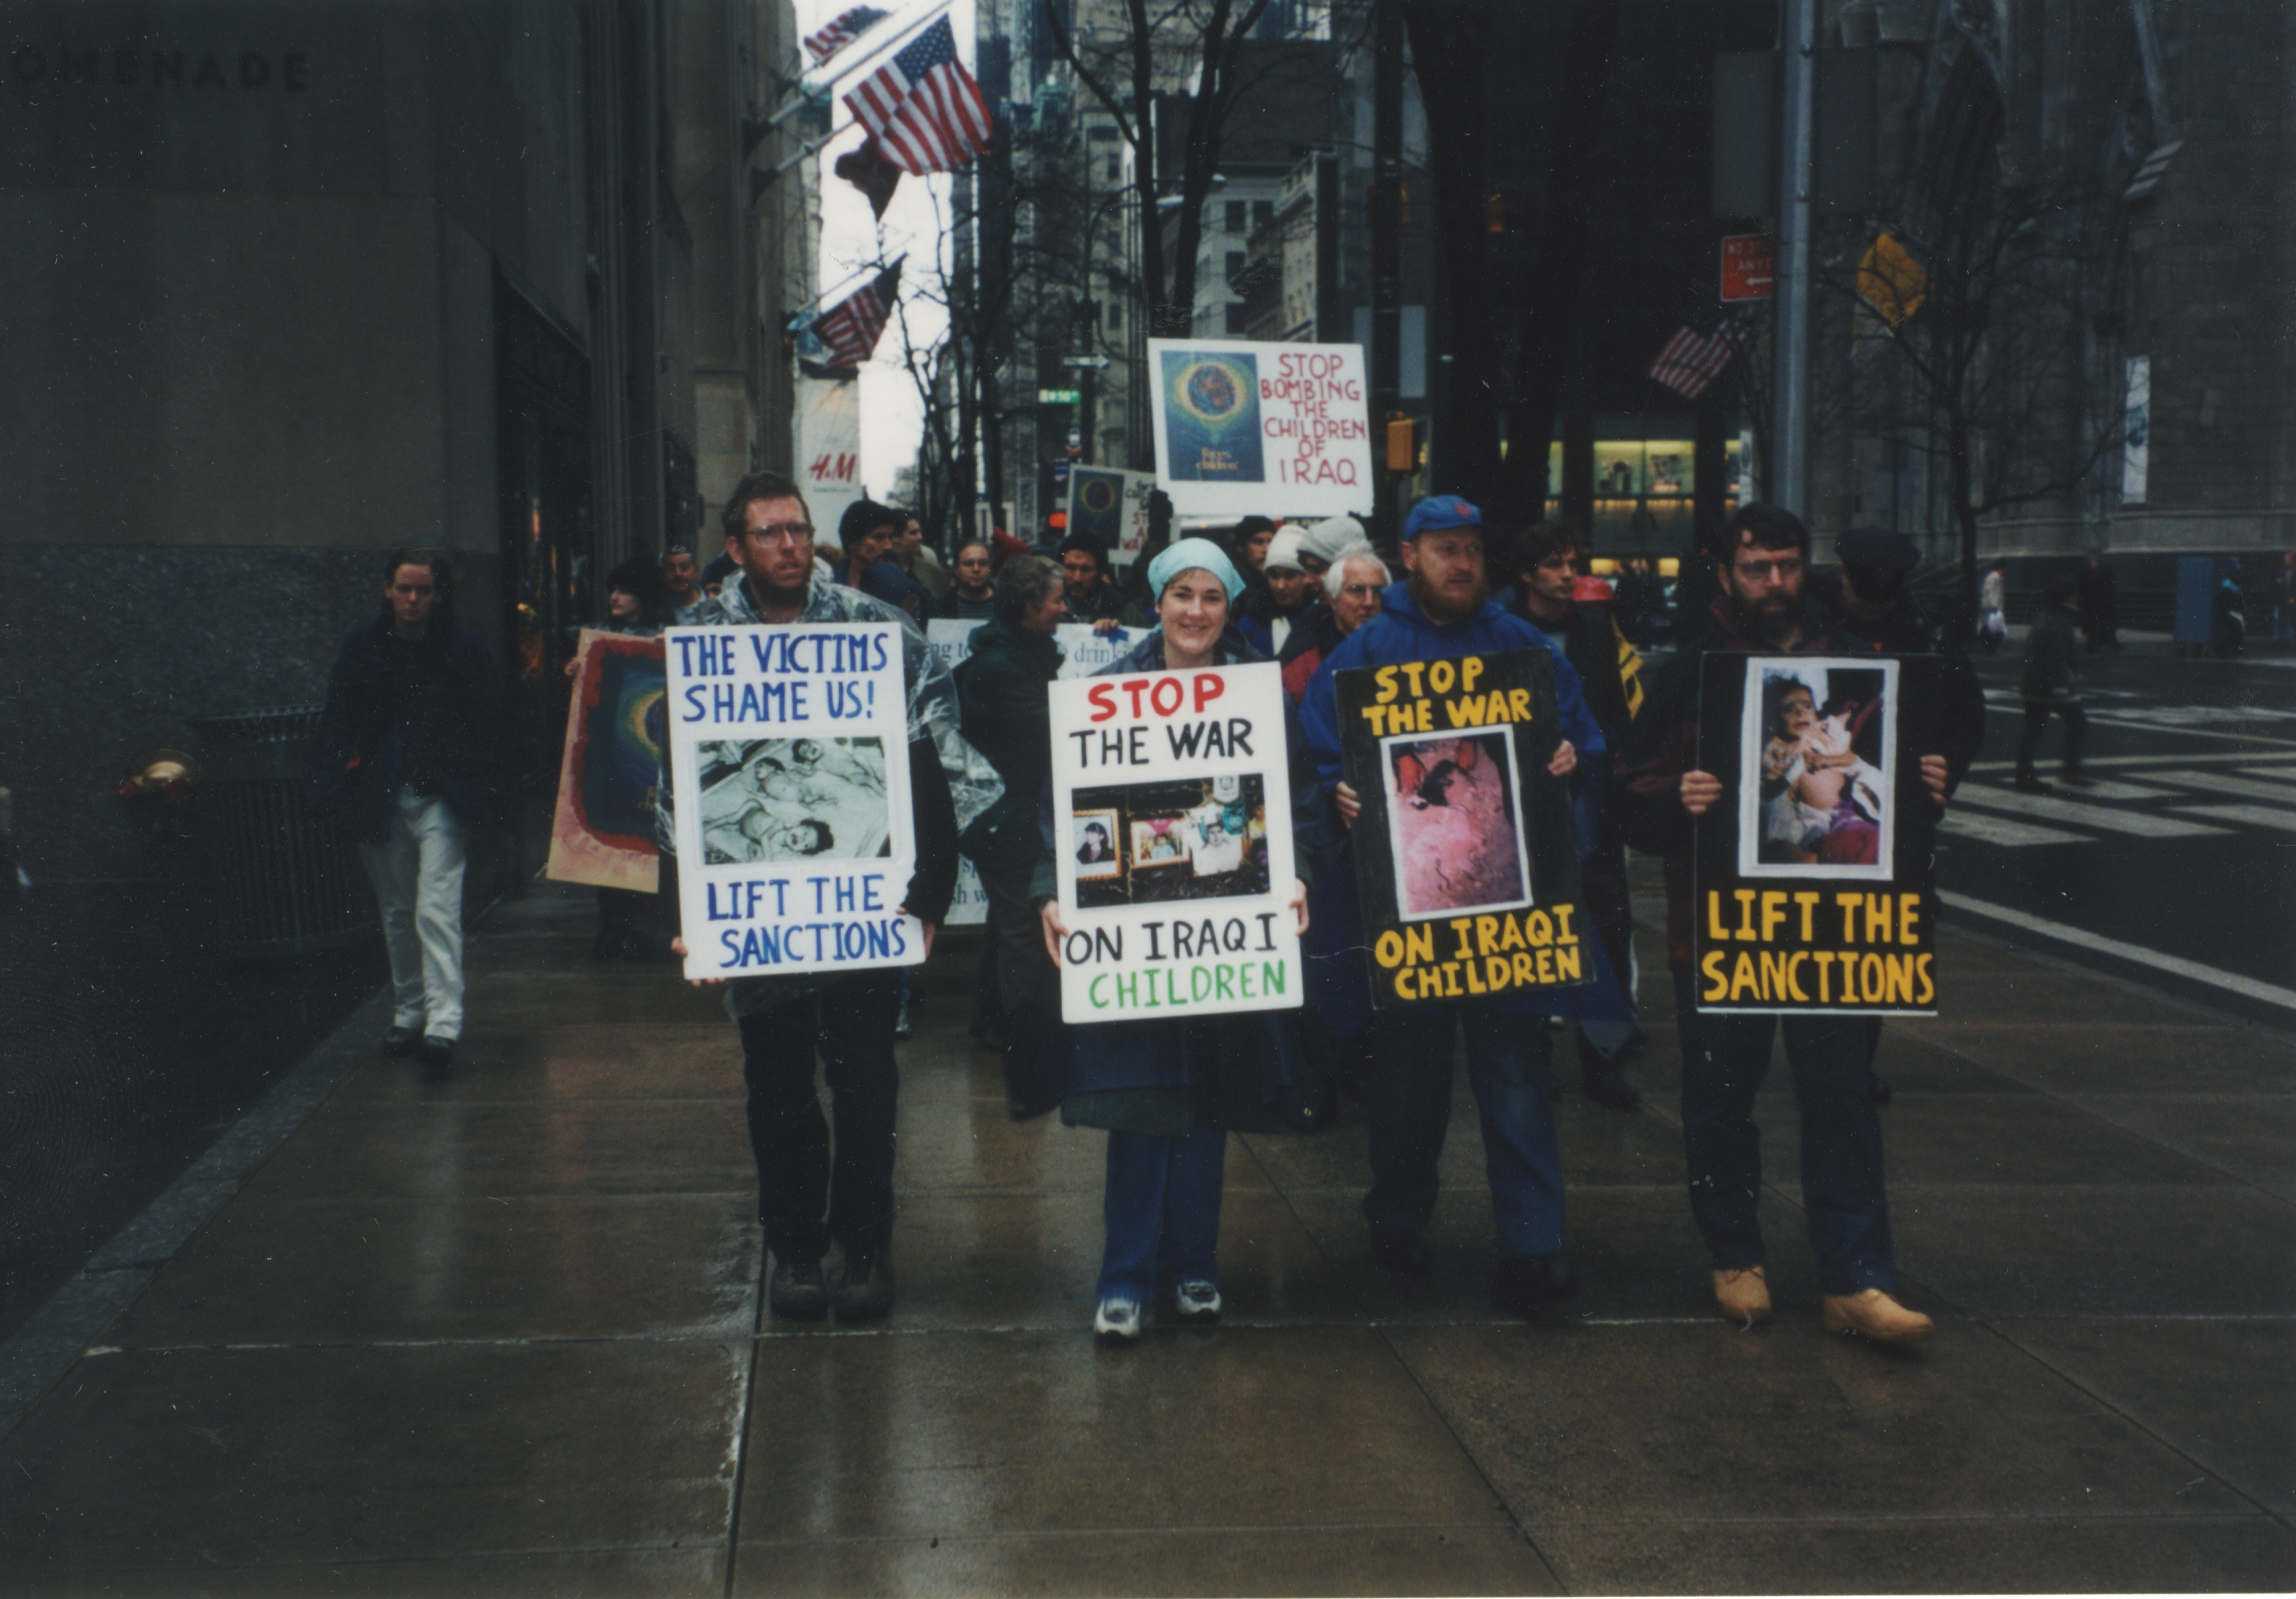 Interfaith Council for Peace and Justice: Antiwar Protest, 2000 image